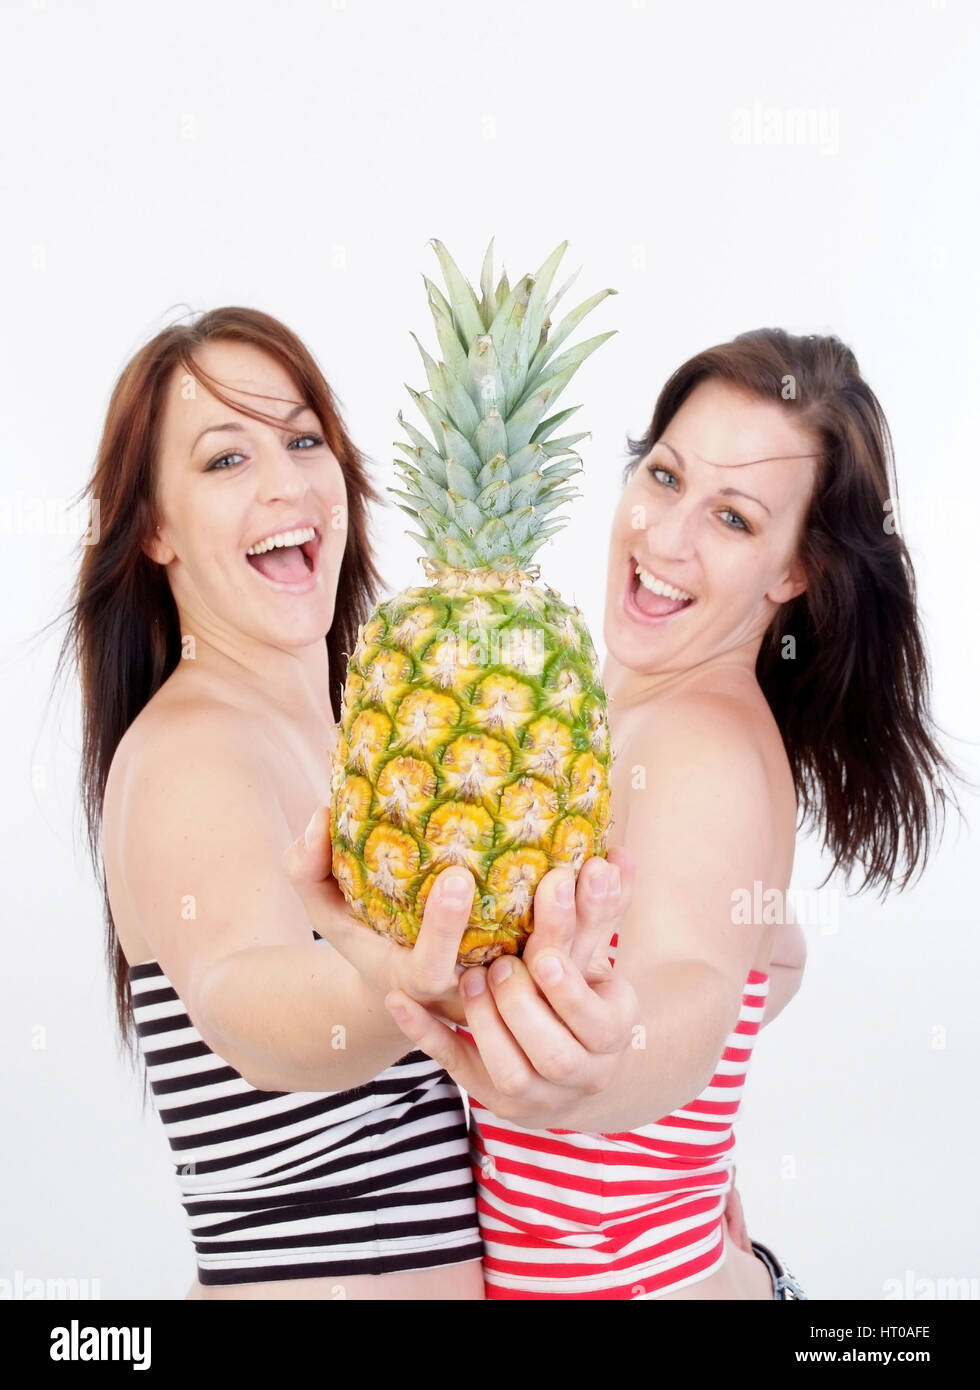 Fr?hliche Zwillinge mit Ananas - twins with pineapple - Stock Image